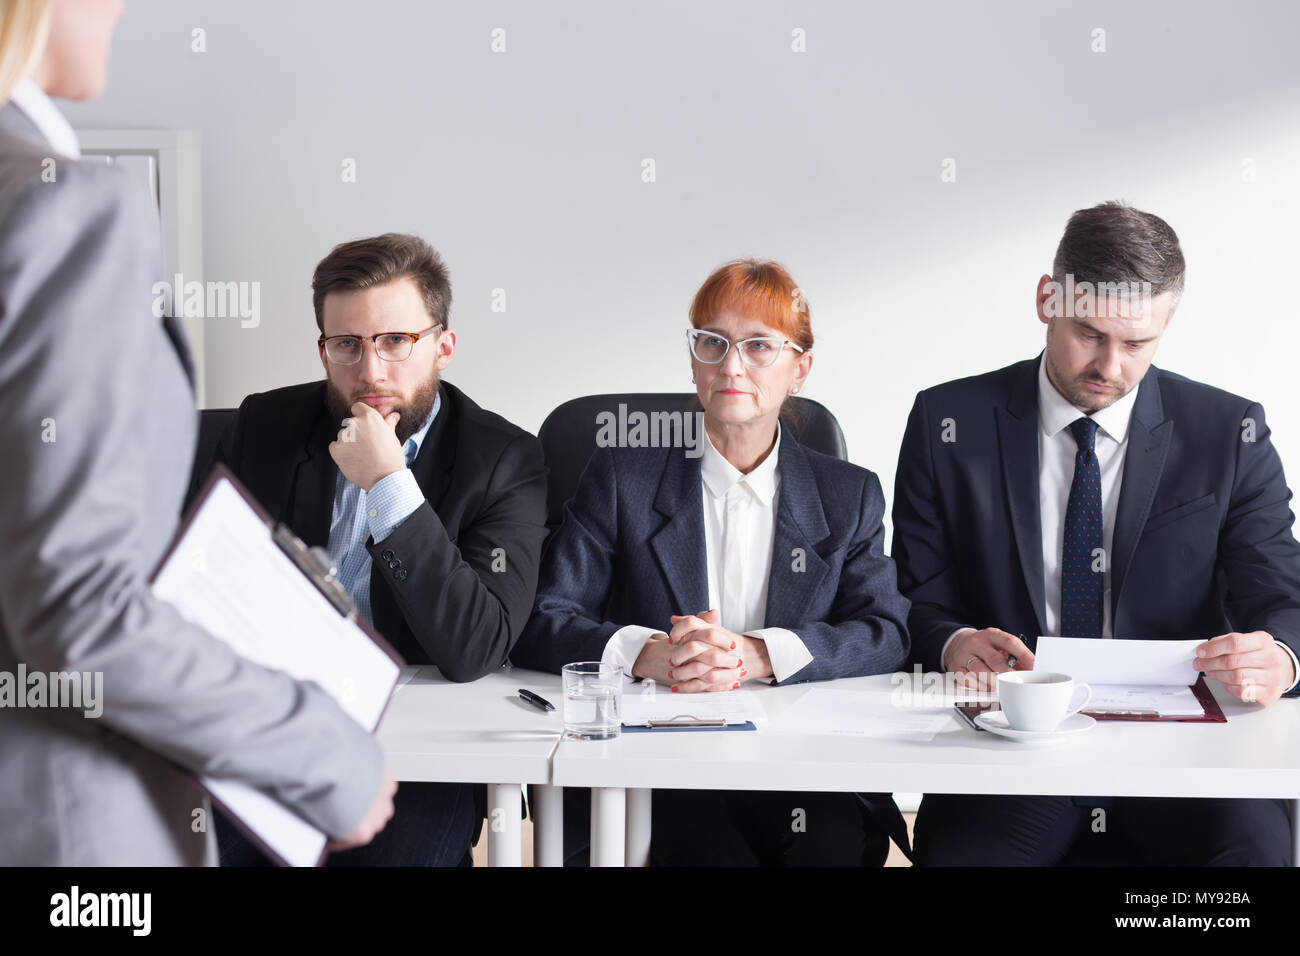 Three members of management during interview with applicant - Stock Image